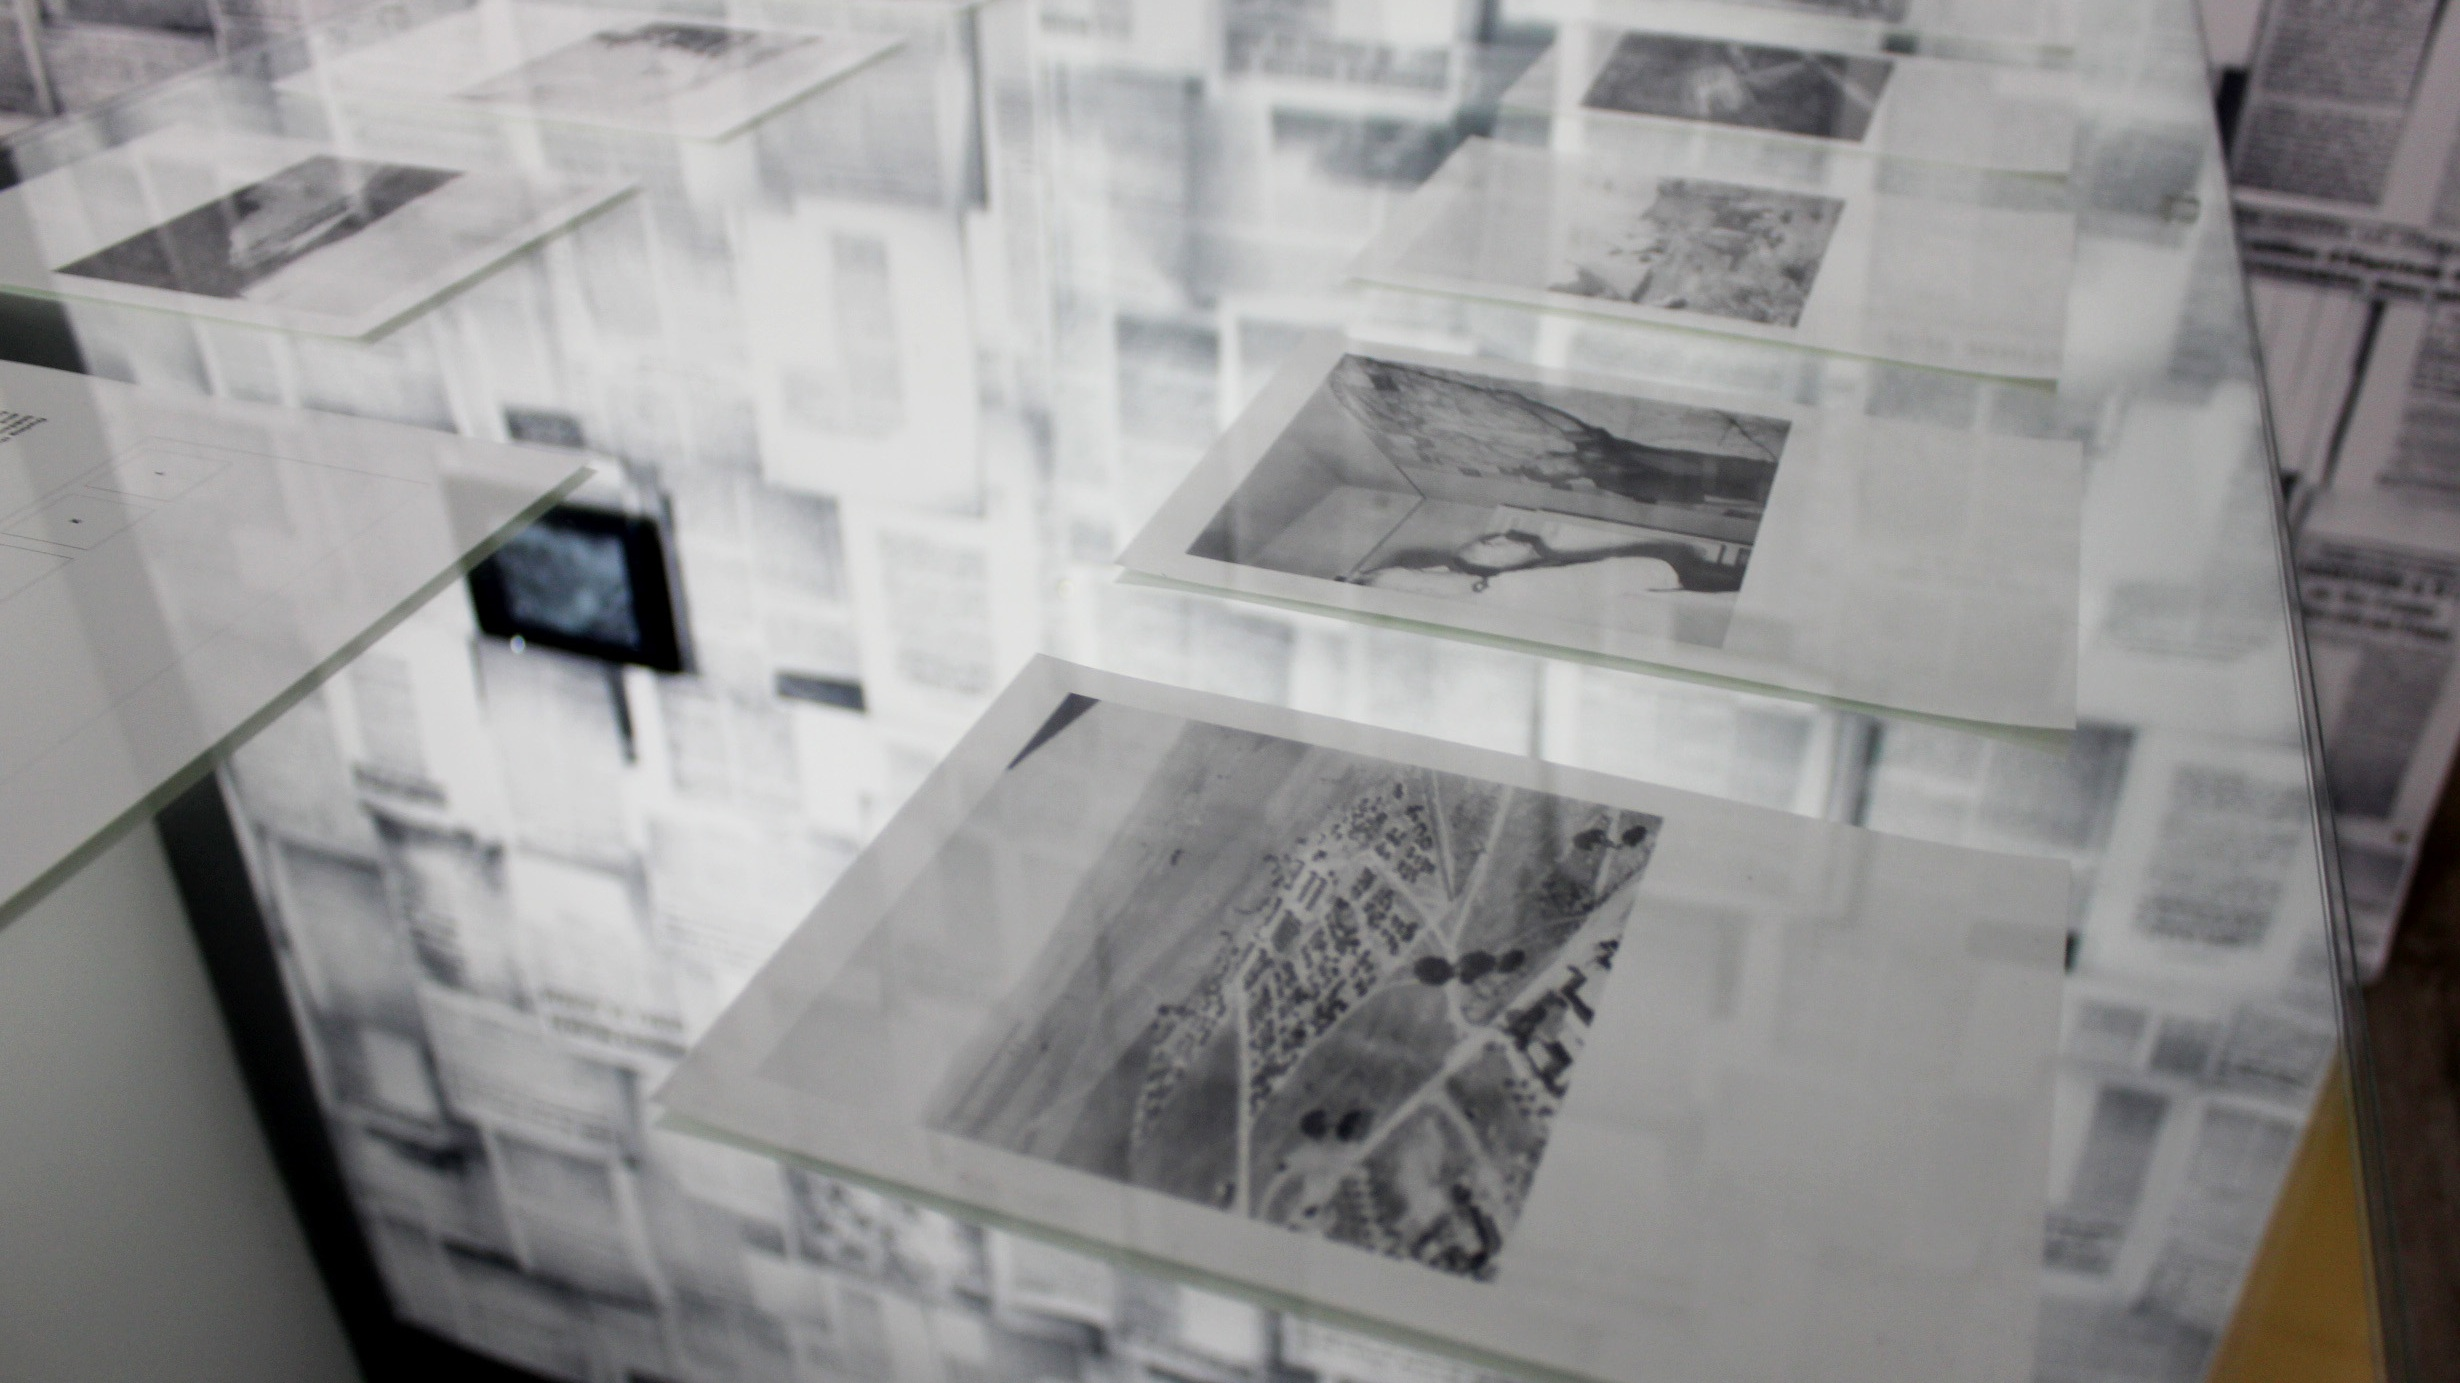 Samia Henni,  Discreet Violence: Architecture and the French War in Algeria.  Installation detail. Photo credit: Twelve Gates Arts and Sahar Irshad.